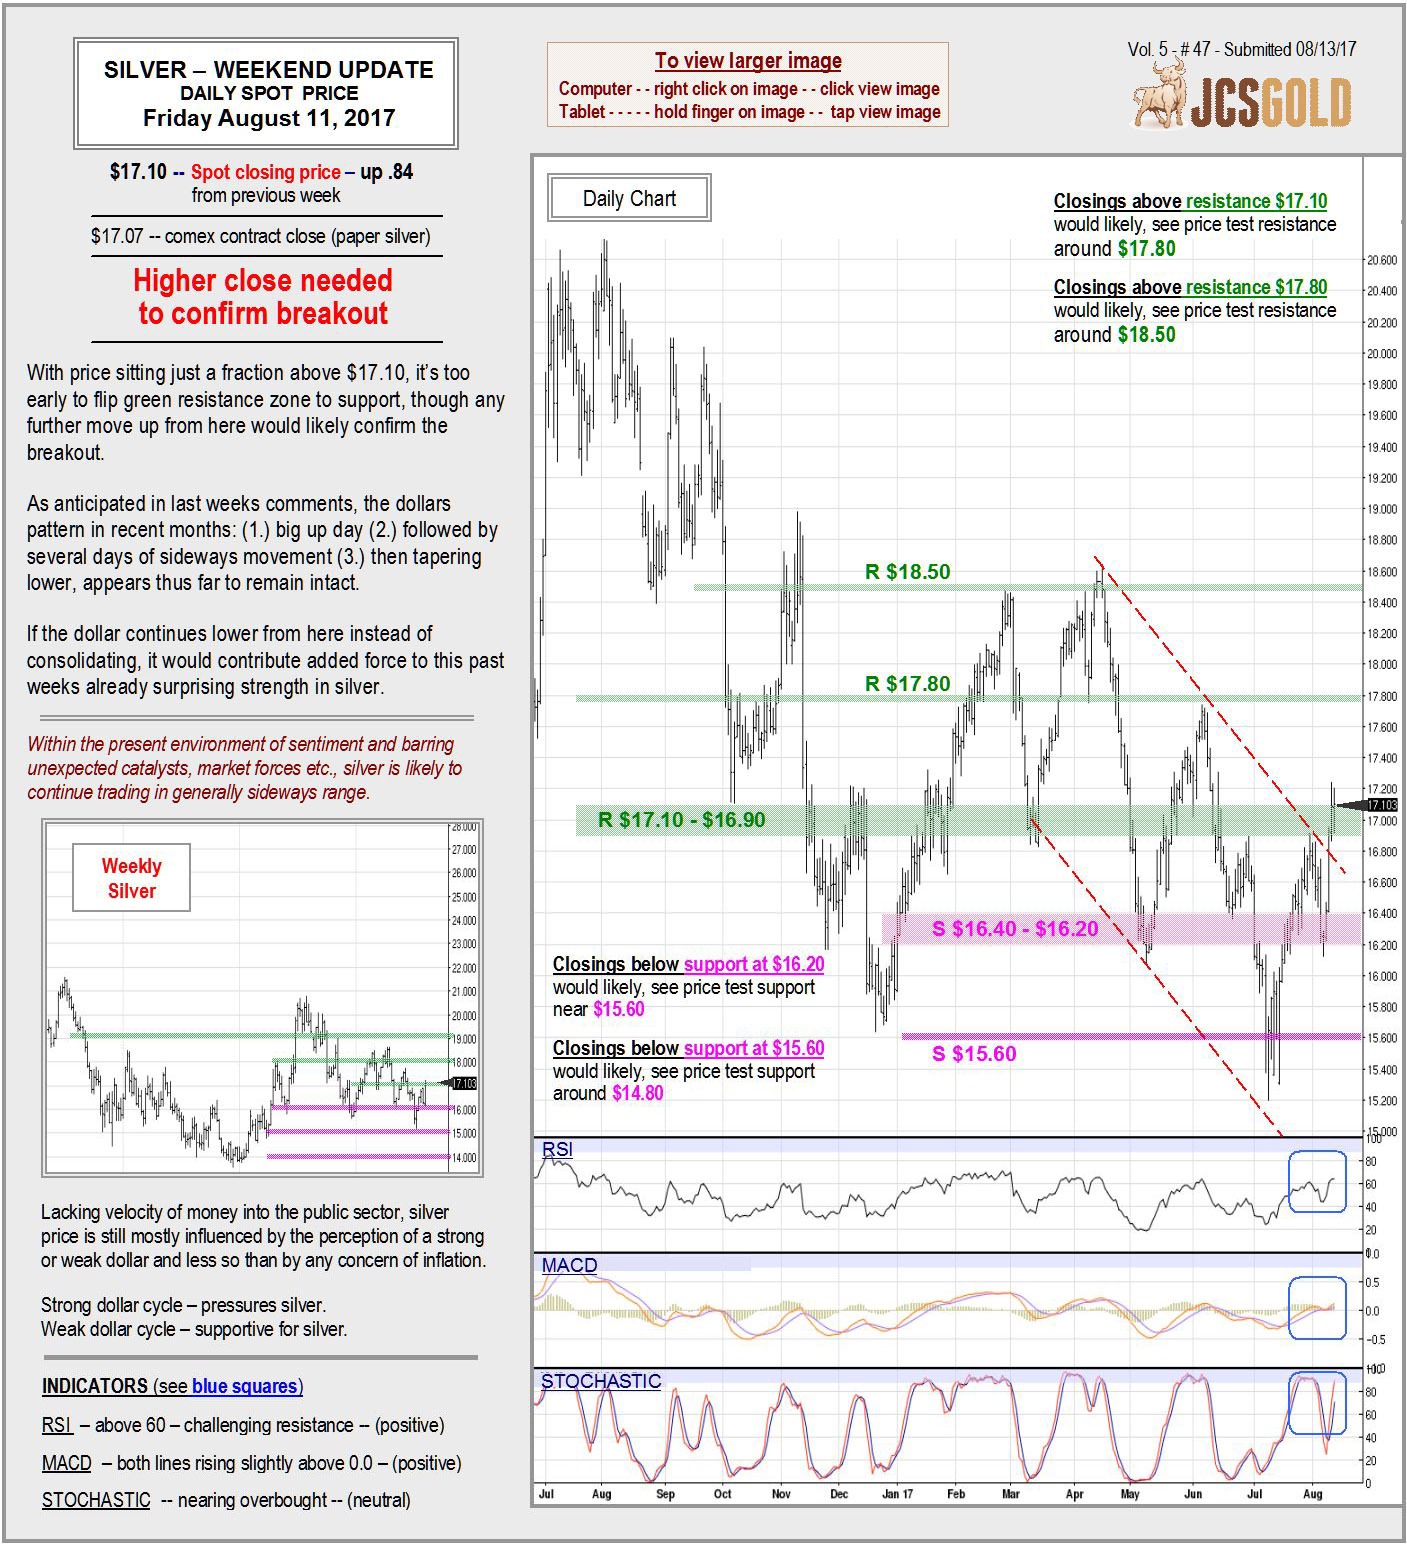 Aug 11, 2017 Chart & Commentary